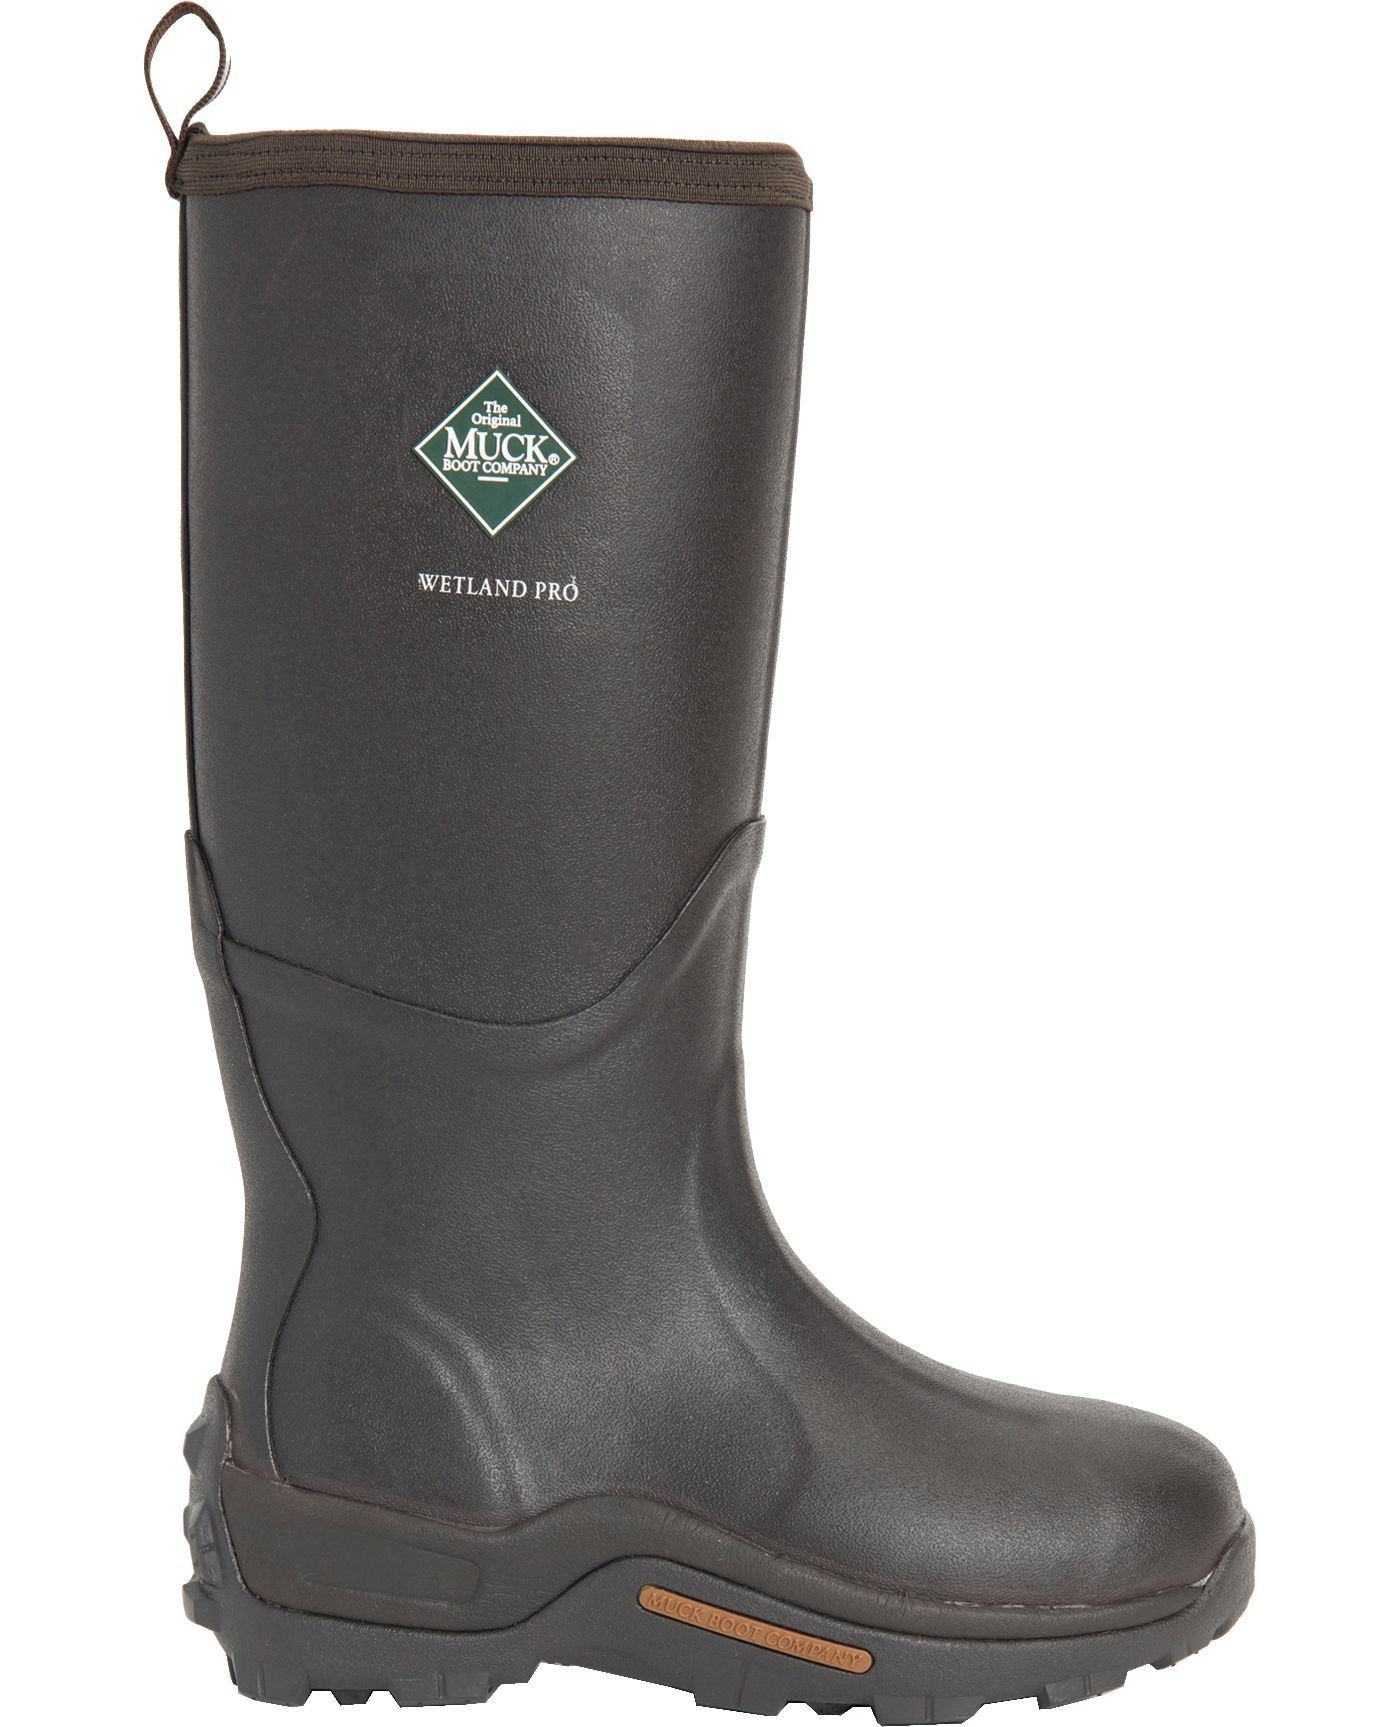 Muck Boots Men's Wetland Pro Snake Hunting Boots